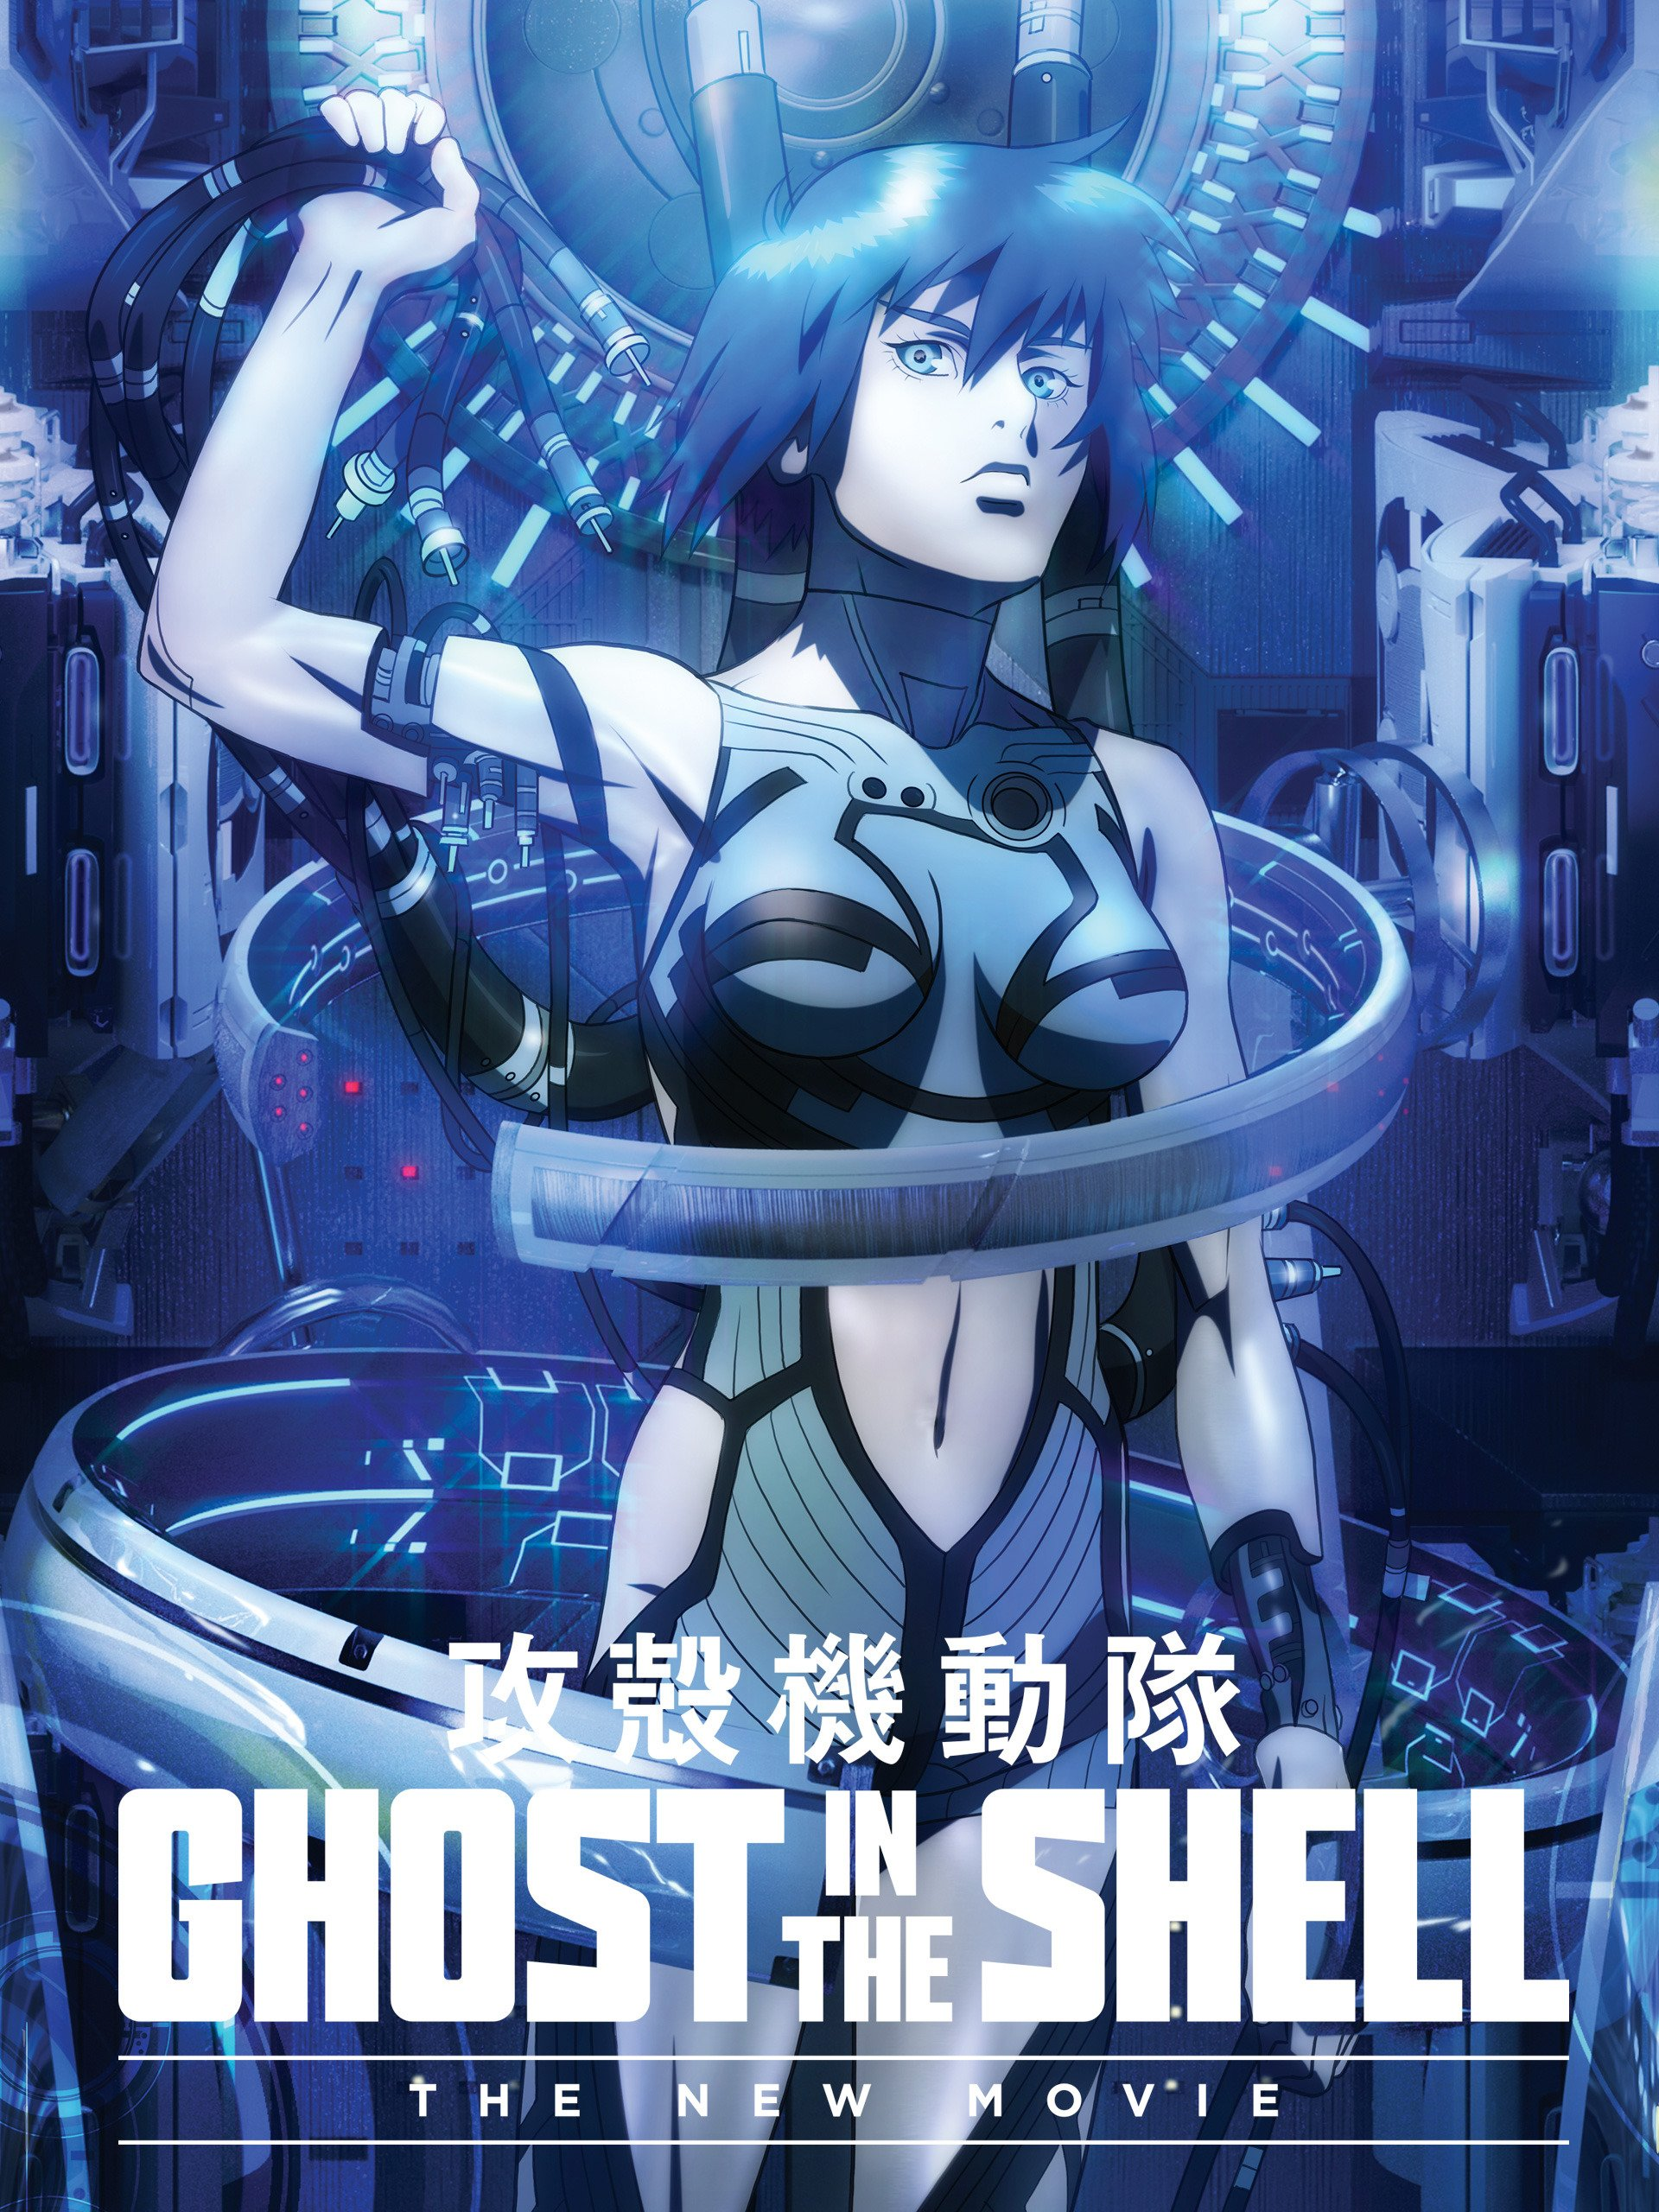 Watch Ghost In The Shell The New Movie Prime Video